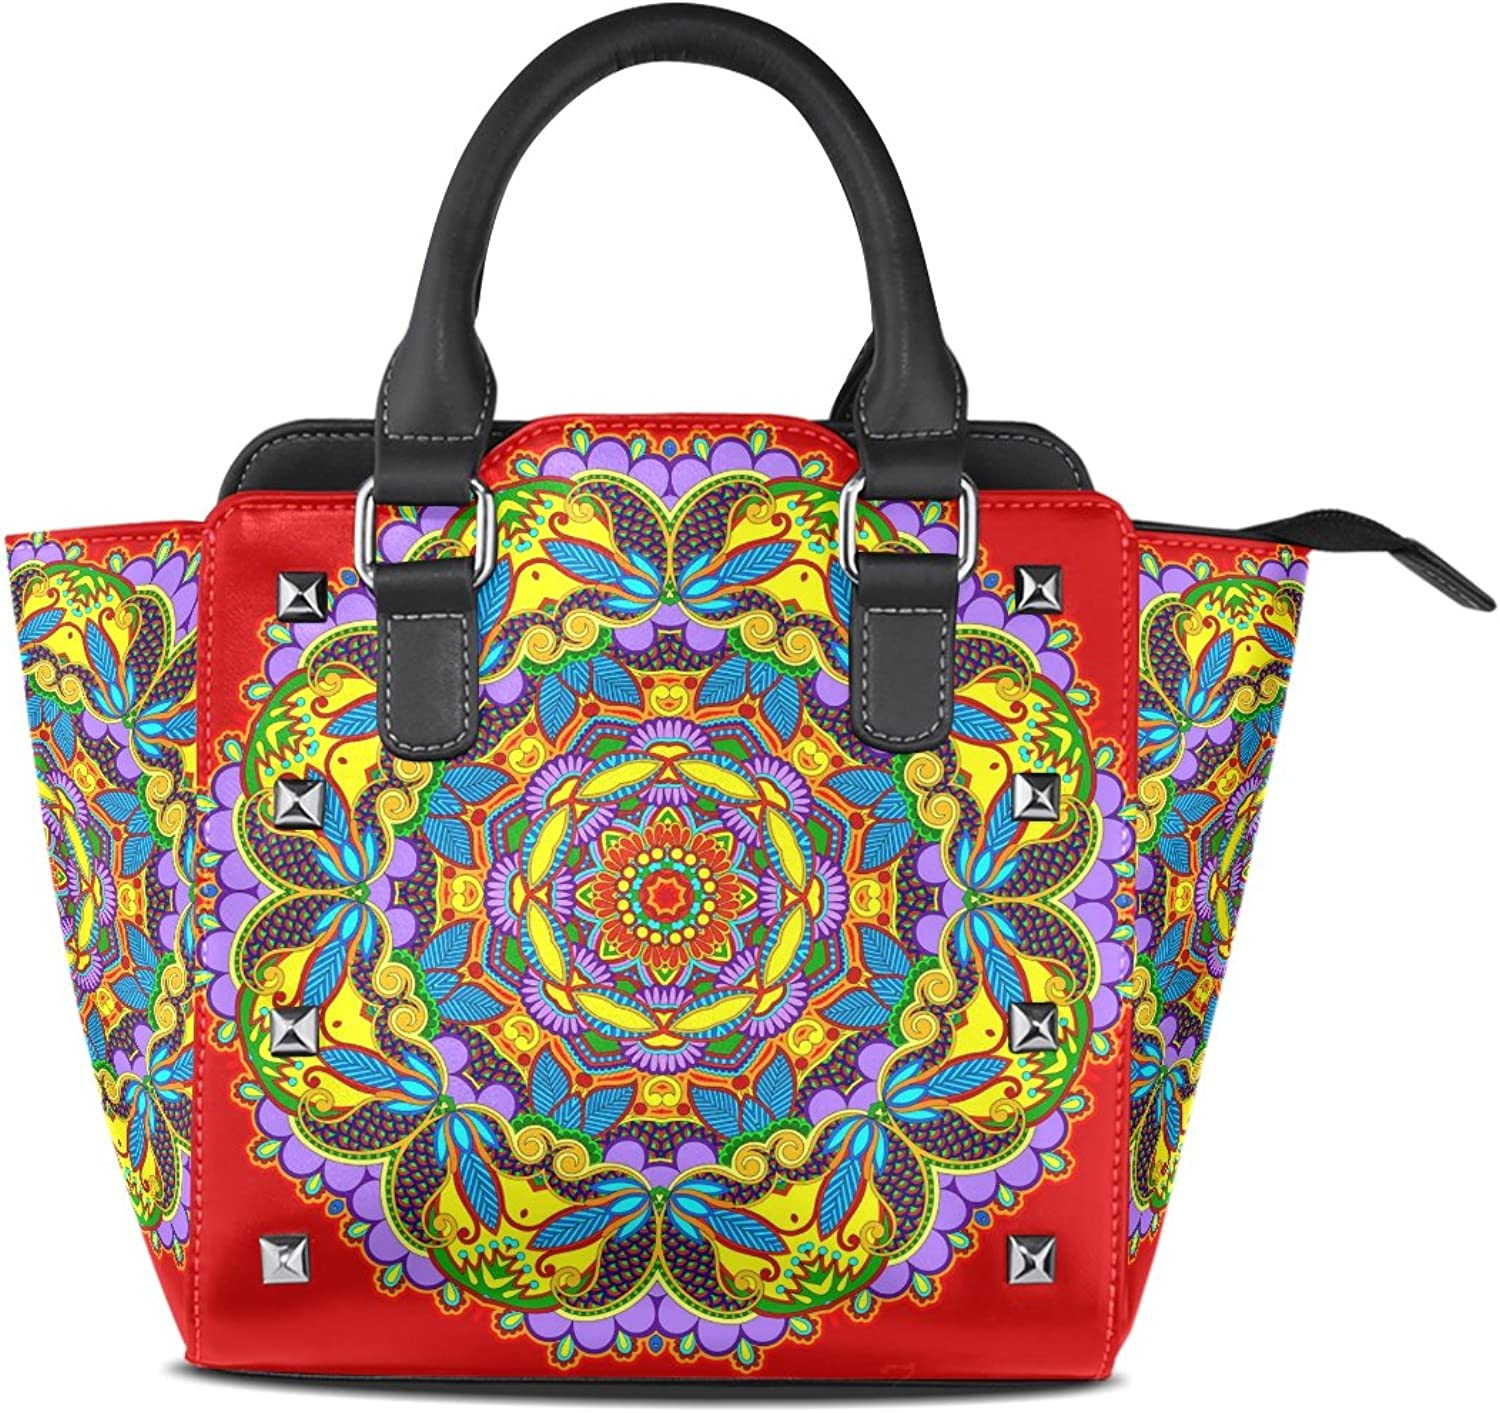 Sunlome Circle Hippie Mandala Bohemian Psychedelic Print Handbags Women's PU Leather Top-Handle Shoulder Bags